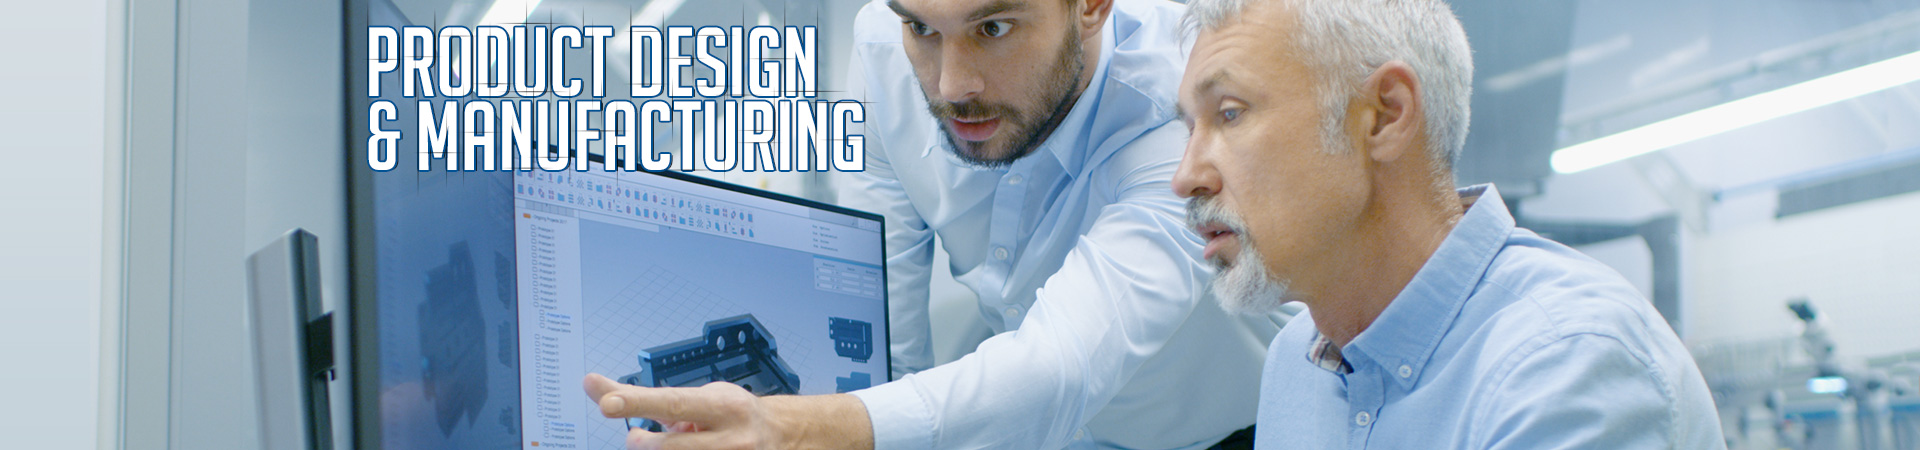 NextComputing workstations for product design and manufacturing